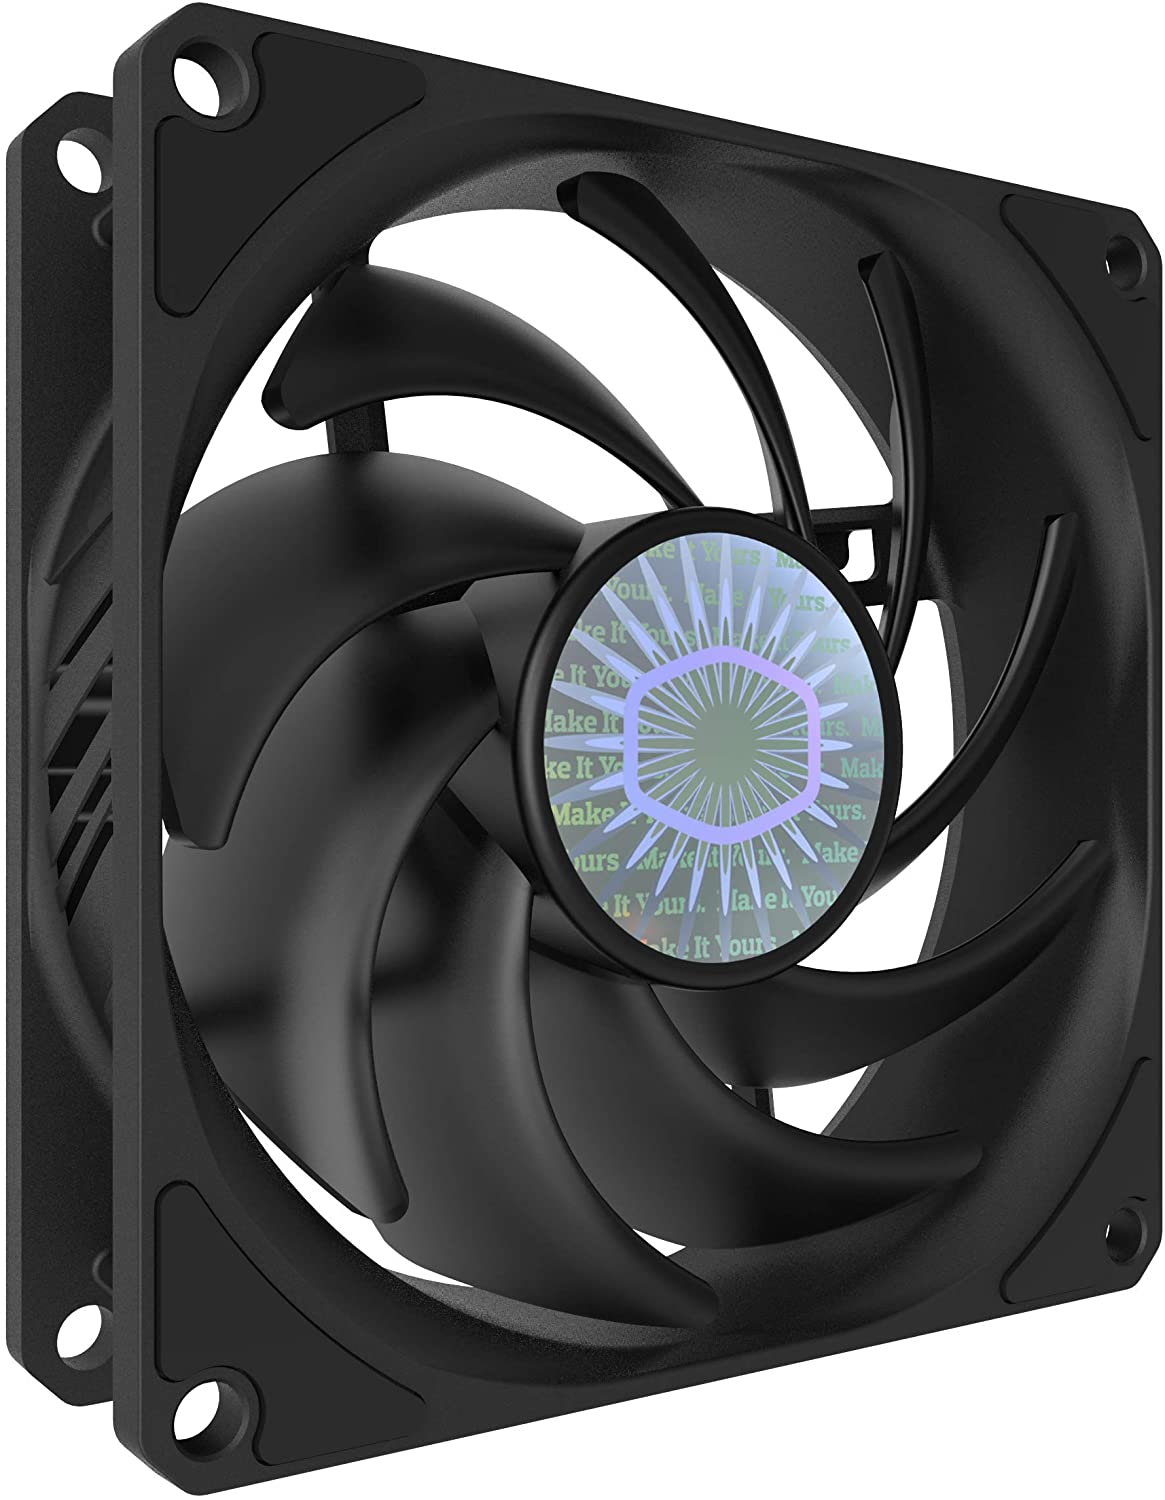 Cooler Master SickleFlow 92 All-Black 92mm Square Frame Fan with Air Balance Curve Blade Design, Sealed Bearing, PWM Control for Computer Case & Air Coolers